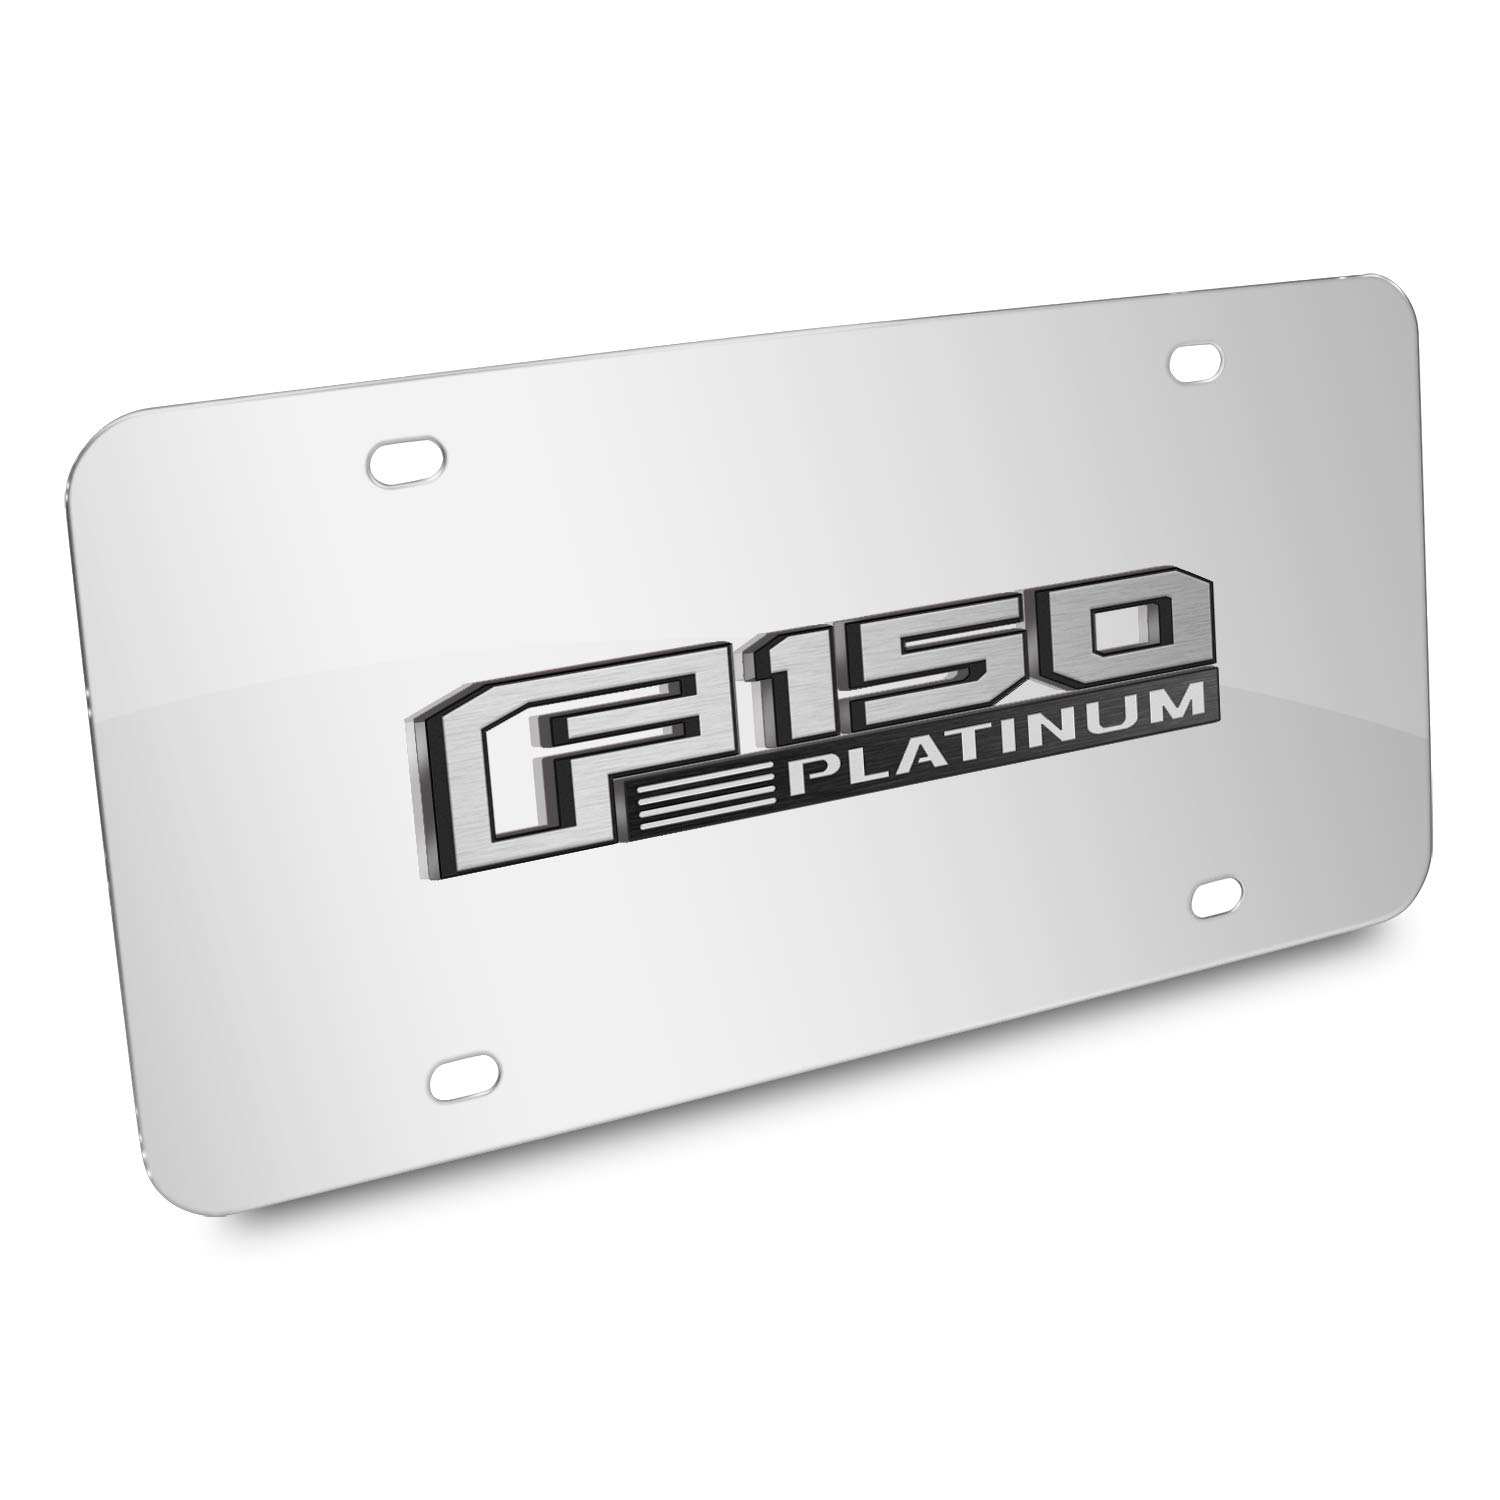 3D Logo Mirror Chrome Stainless Steel License Plate iPick Image Ford F-150 Platinum